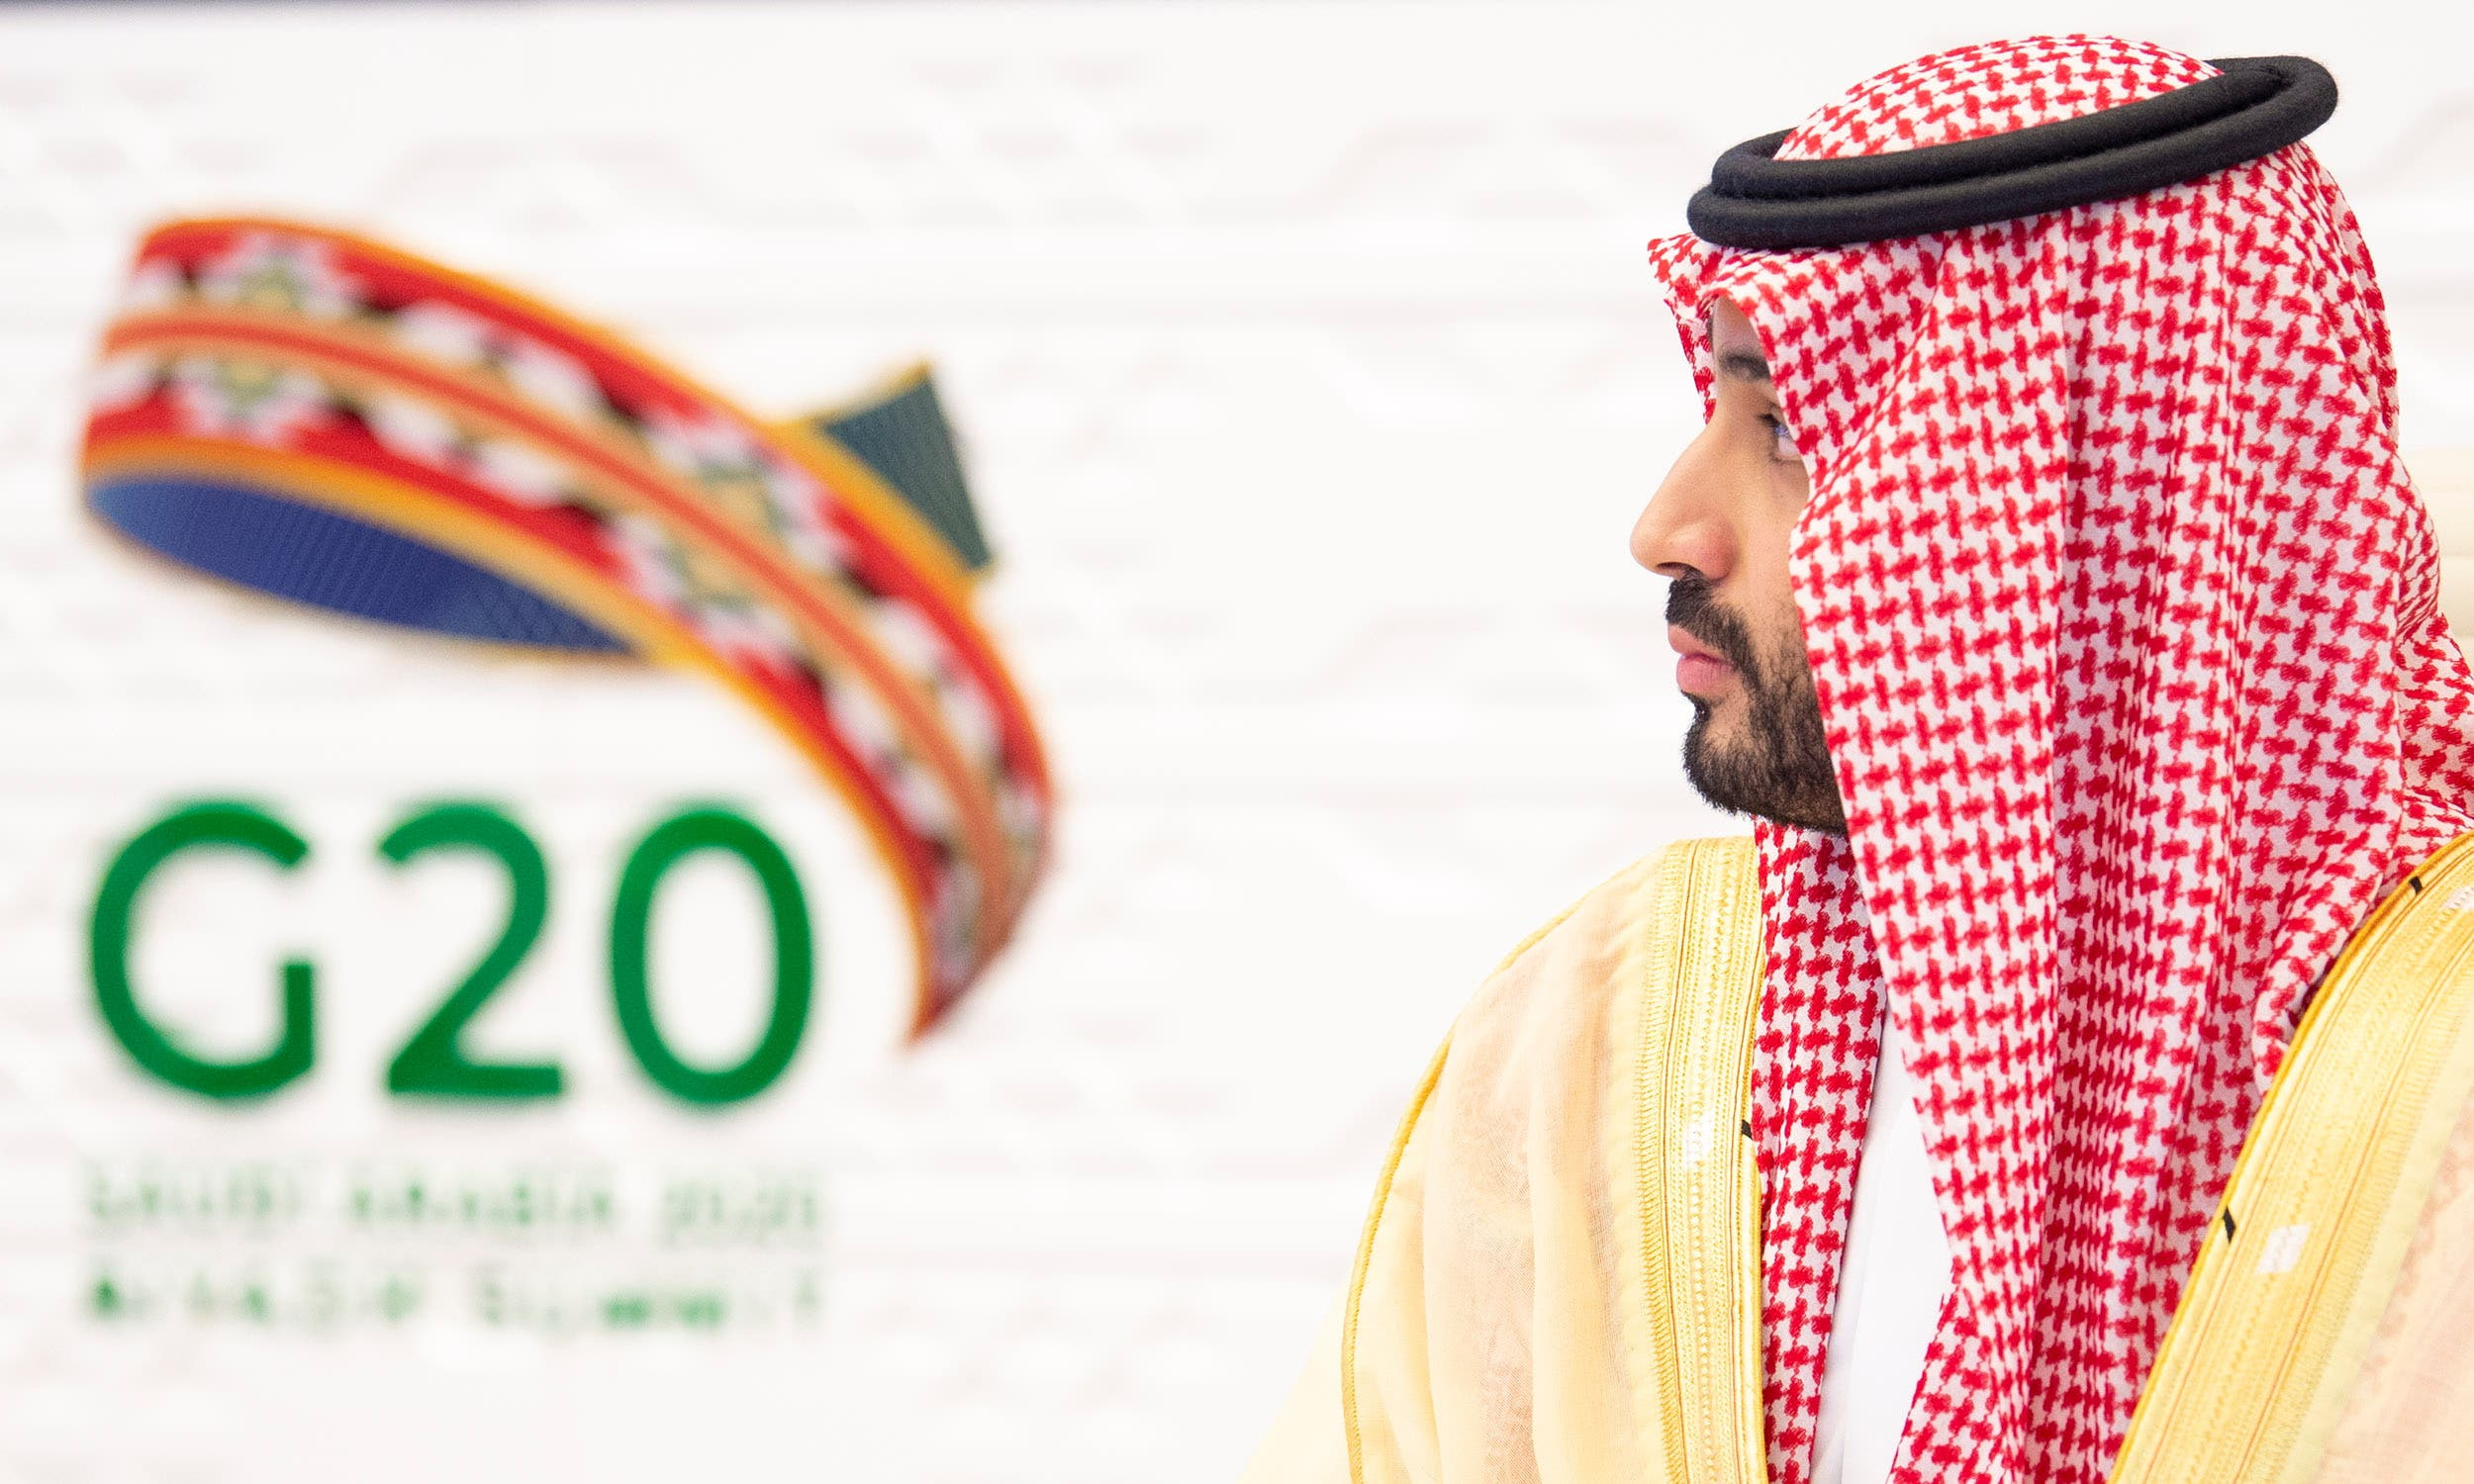 Saudi Crown Prince Mohammed bin Salman attends the 15th annual G20 Leaders' Summit in Riyadh, Saudi Arabia, November 22, 2020. (Reuters)